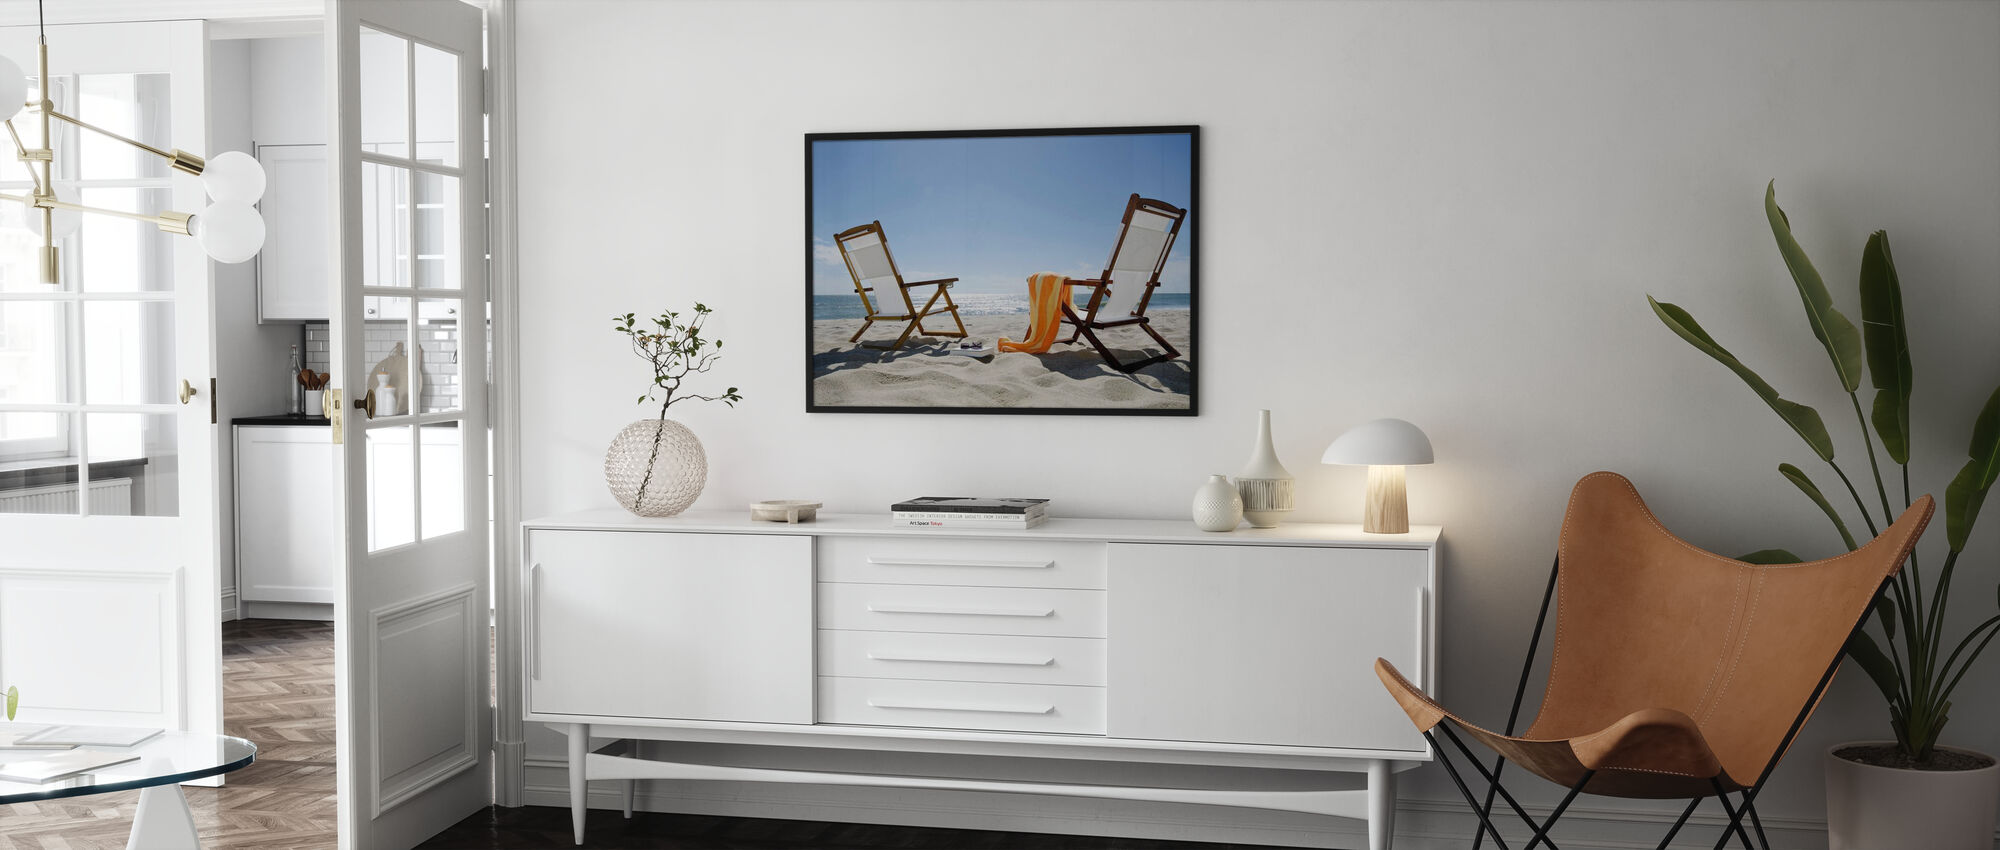 Sun Chairs - Poster - Living Room